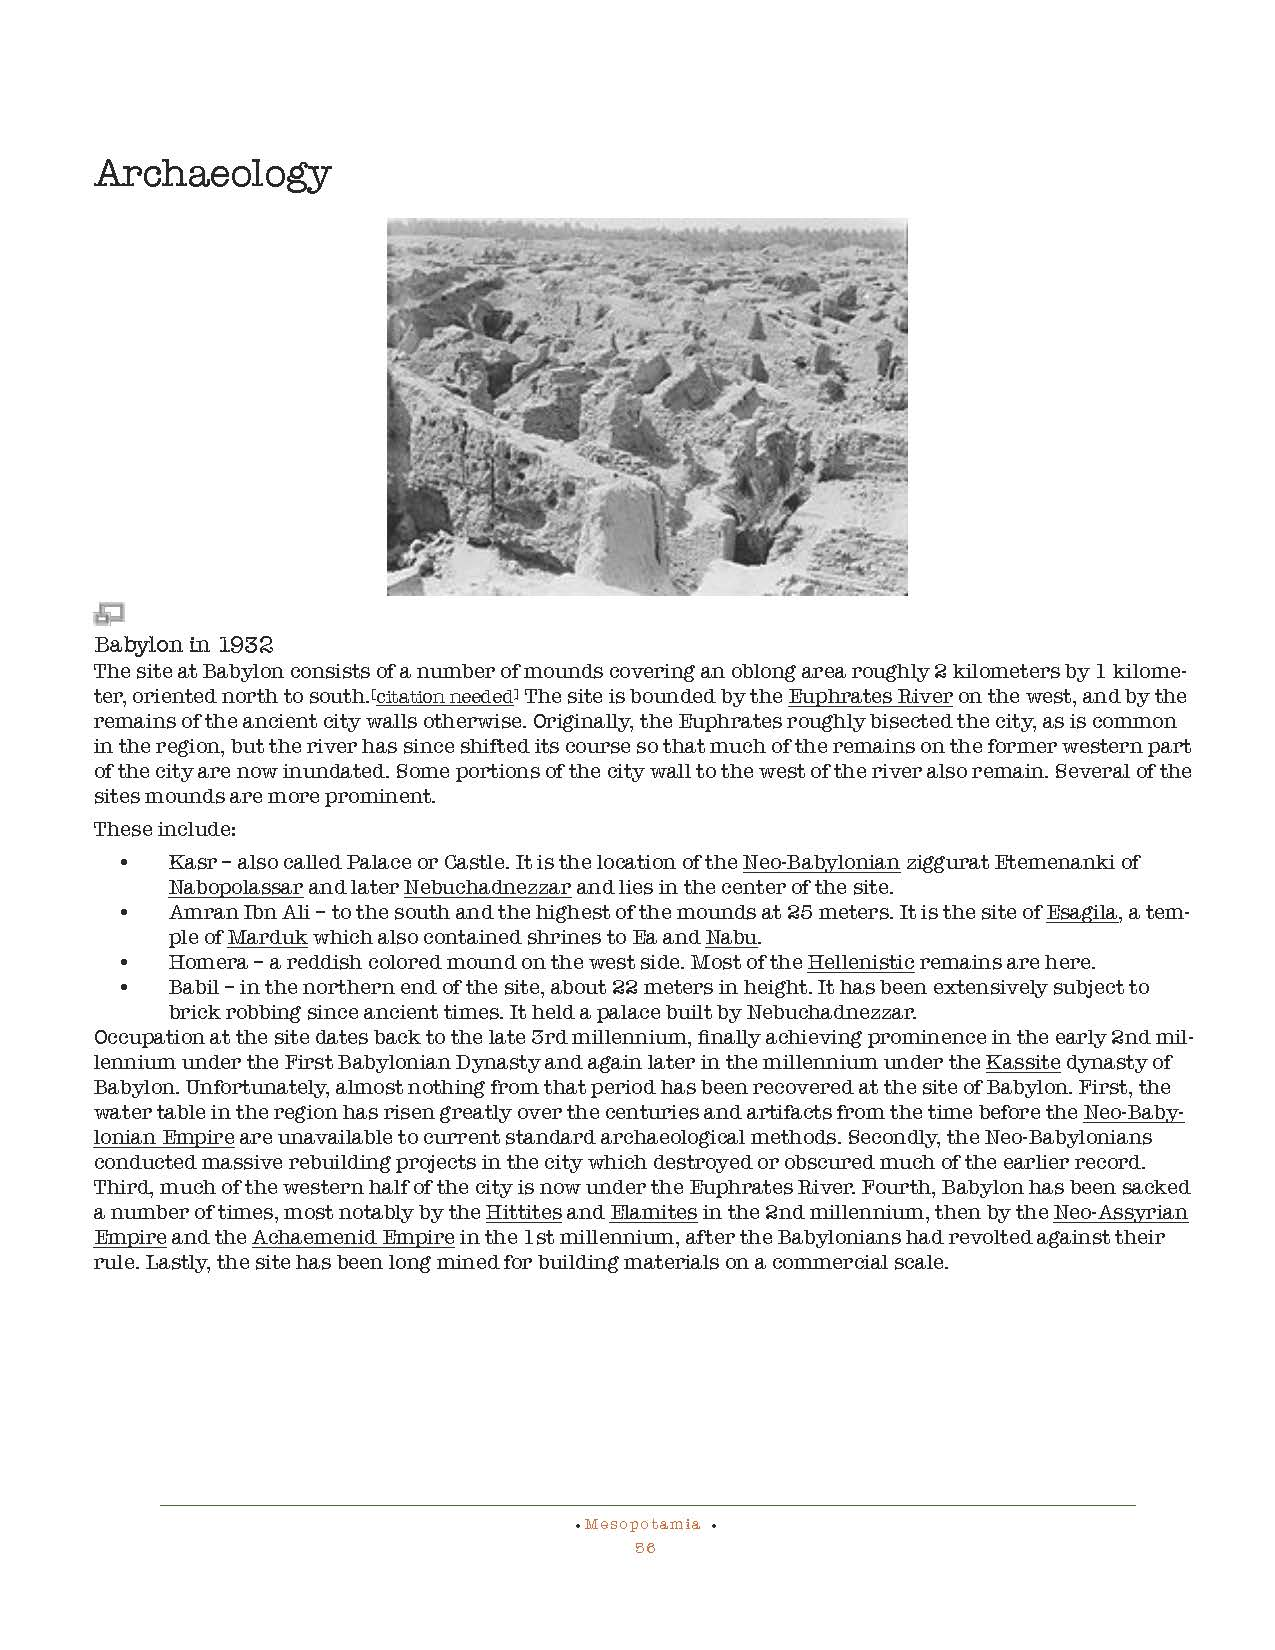 HOCE- Fertile Crescent Notes_Page_056.jpg